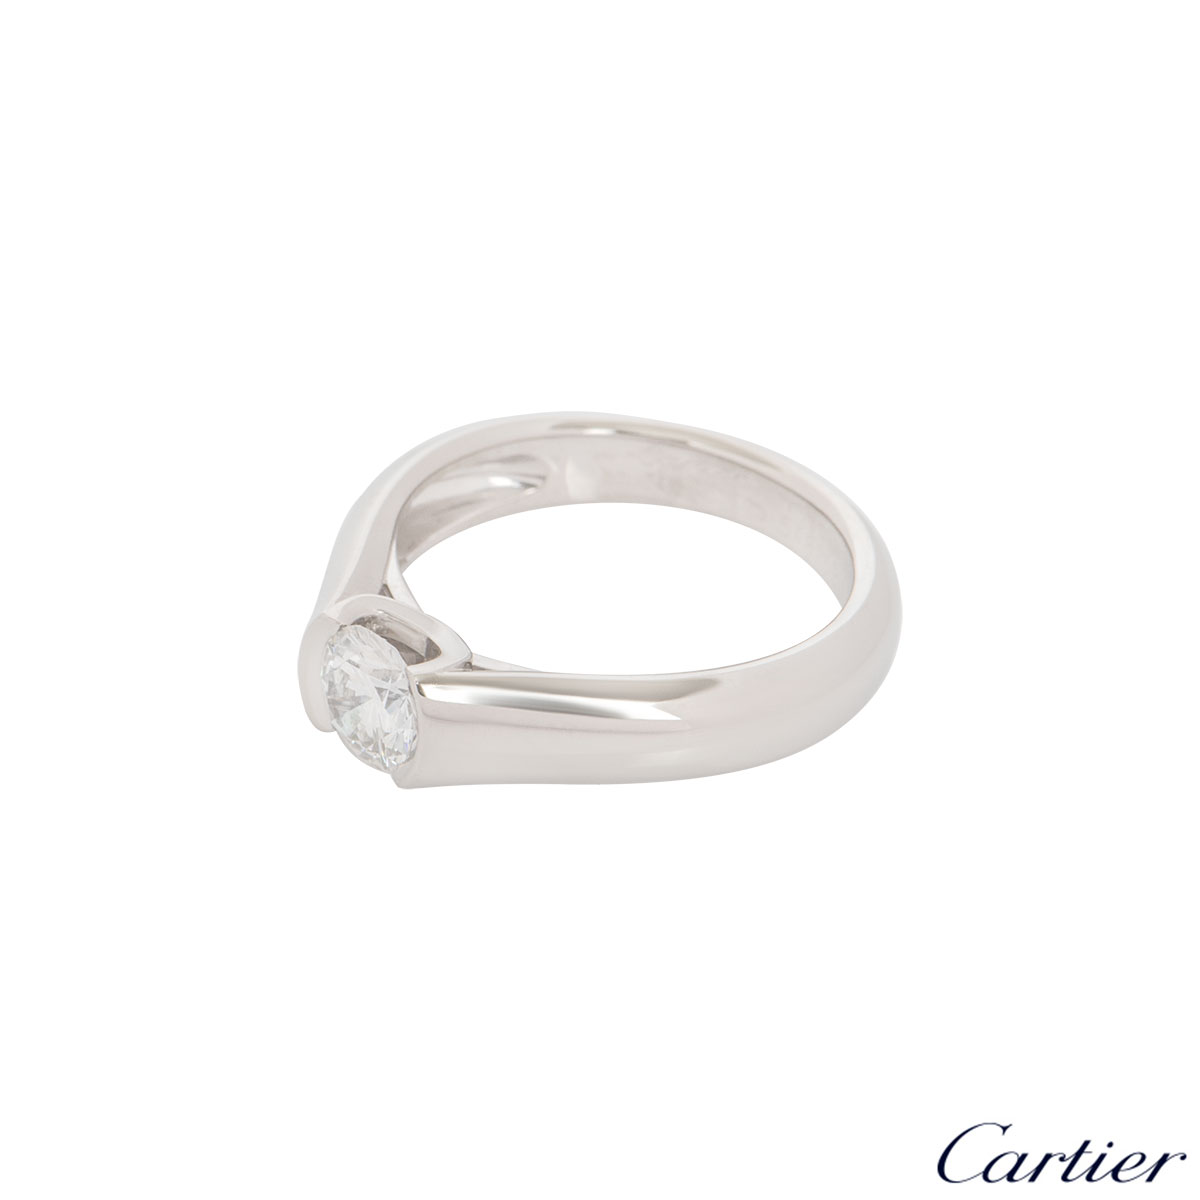 C de Cartier Platinum Diamond Ring 0.54ct G/VS1